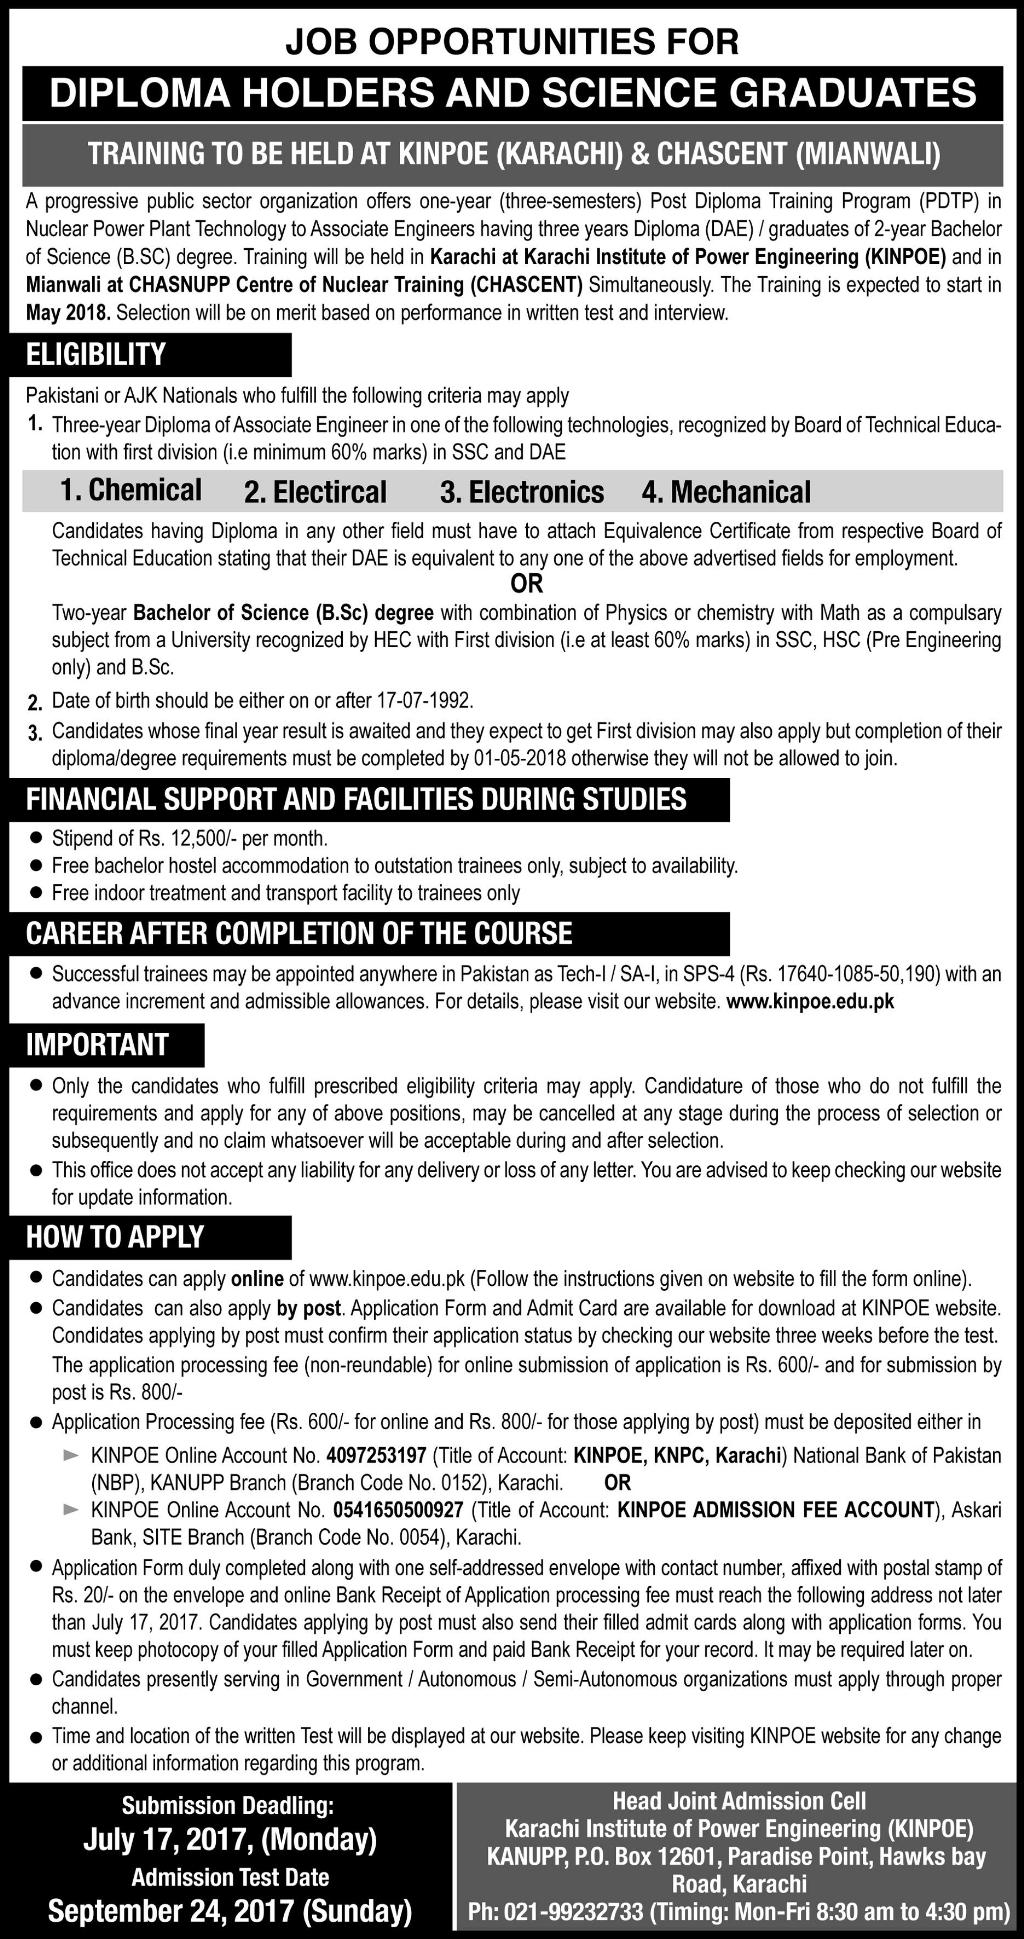 Atomic Energy Jobs 2017 Latest For DAE and Science Graduates Training at KINPOE and CHASCENT